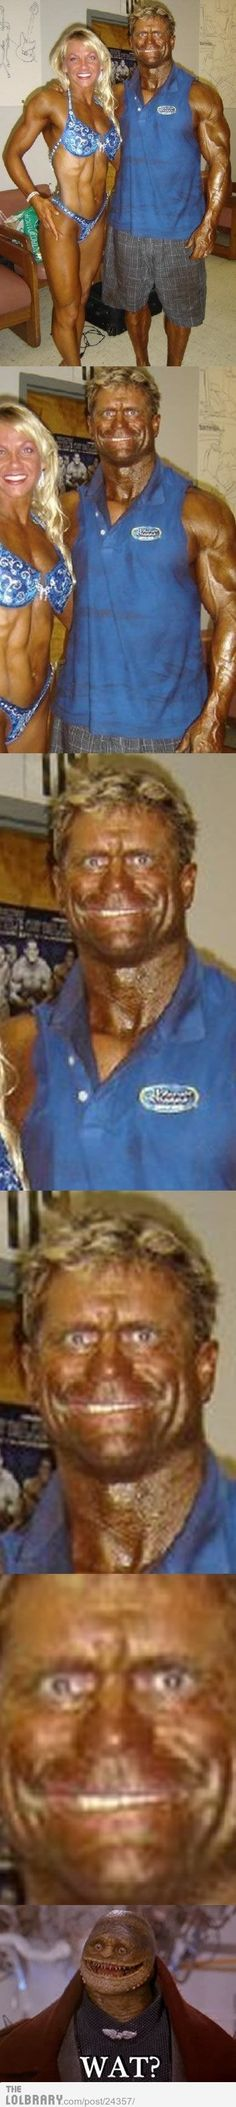 The tanning is to highlight muscle definition. This went too far.